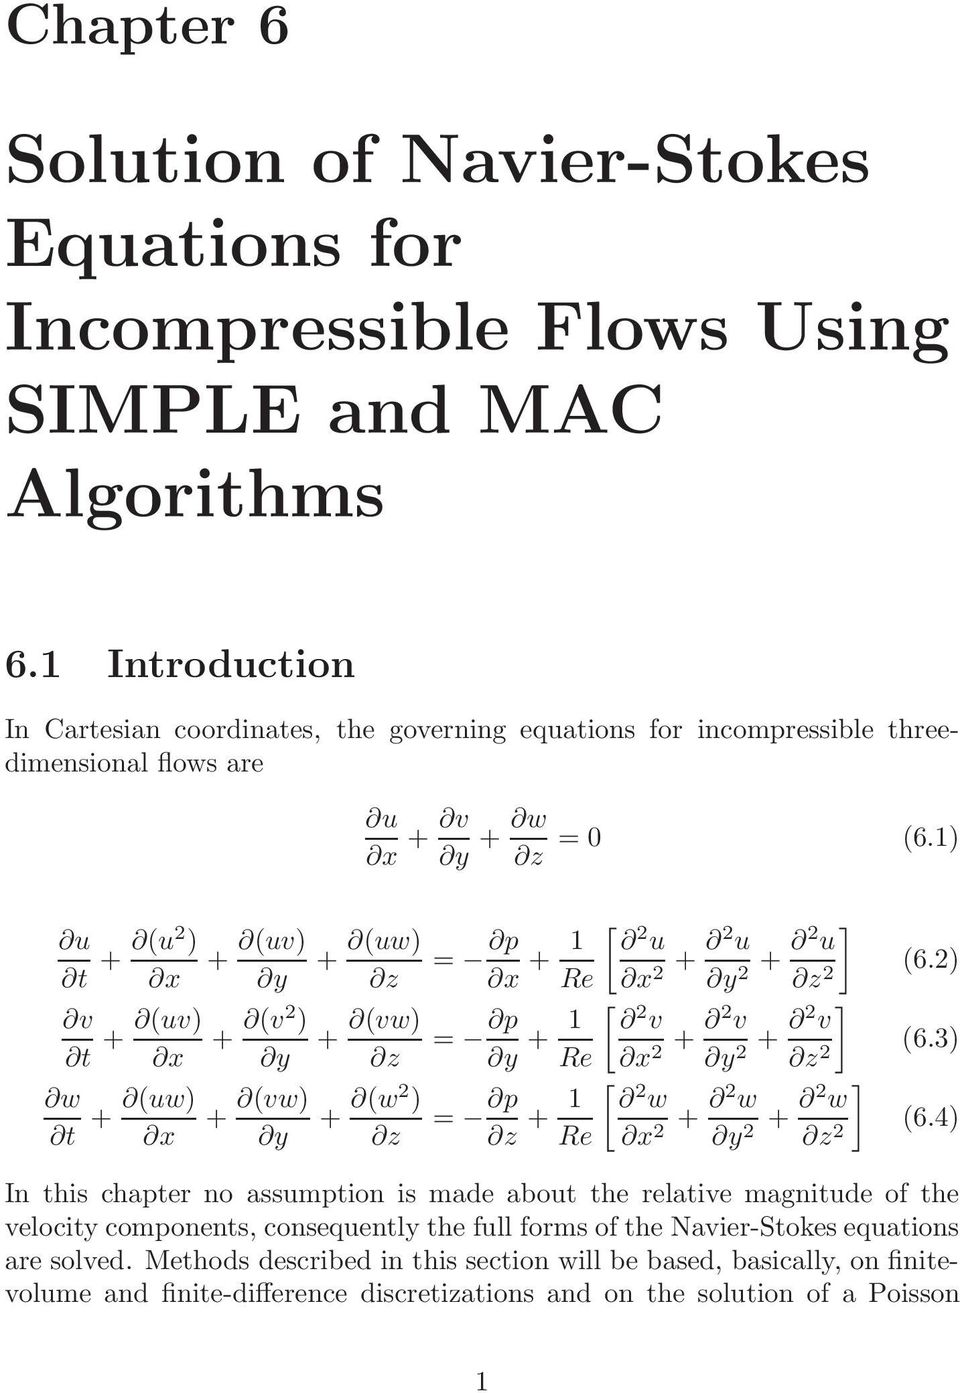 Solution of Navier-Stokes Equations for Incompressible Flows